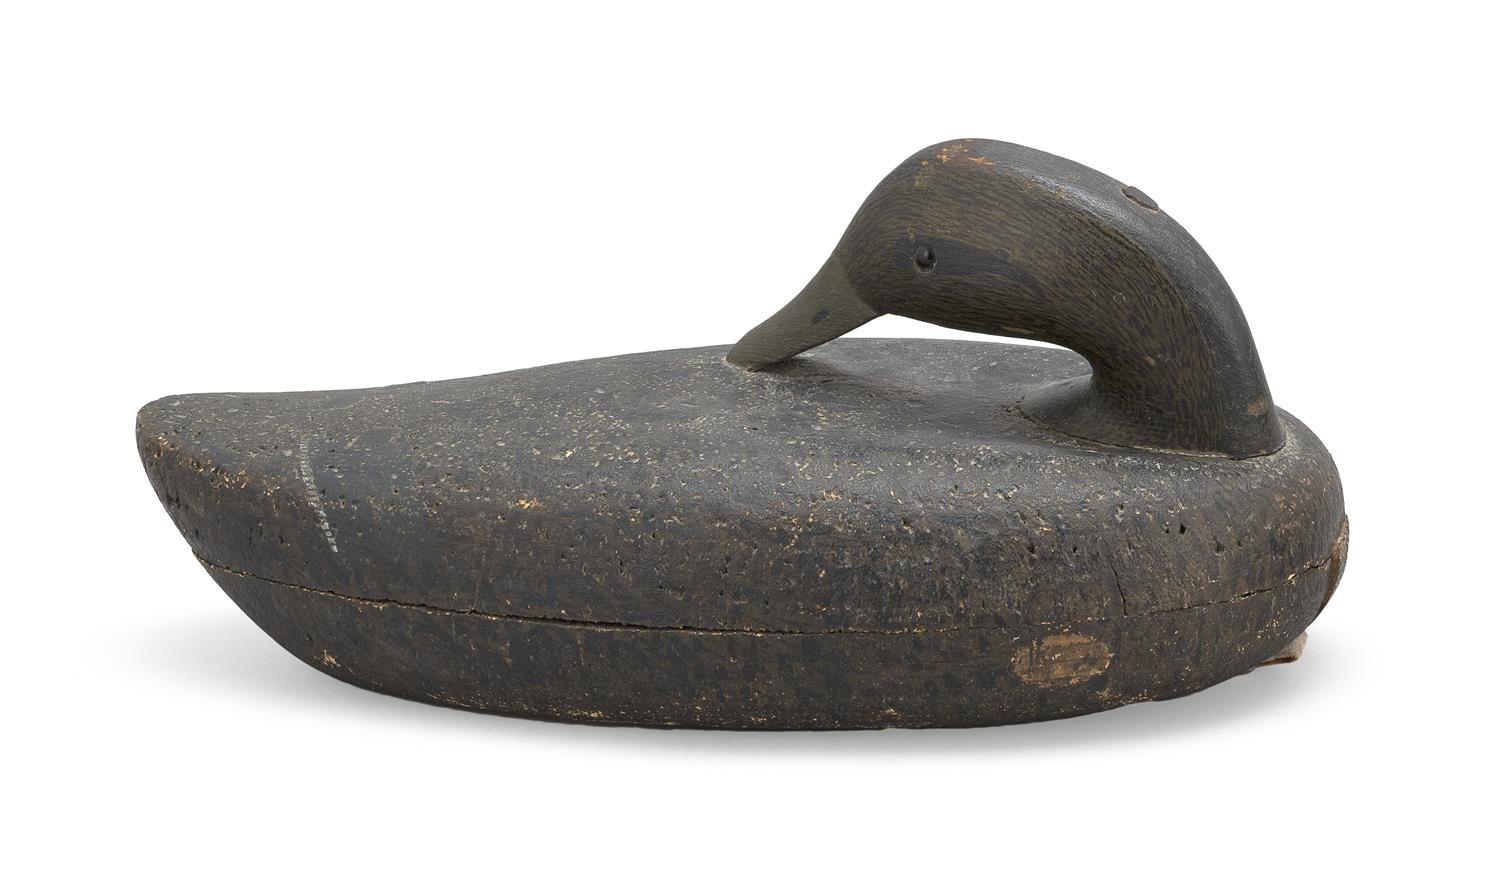 """GEORGE B. ROBERT CORK-BODIED BLACK DUCK DECOY In preening position. Rig brand on underside for """"Manning""""; tag identifies it as Willi..."""